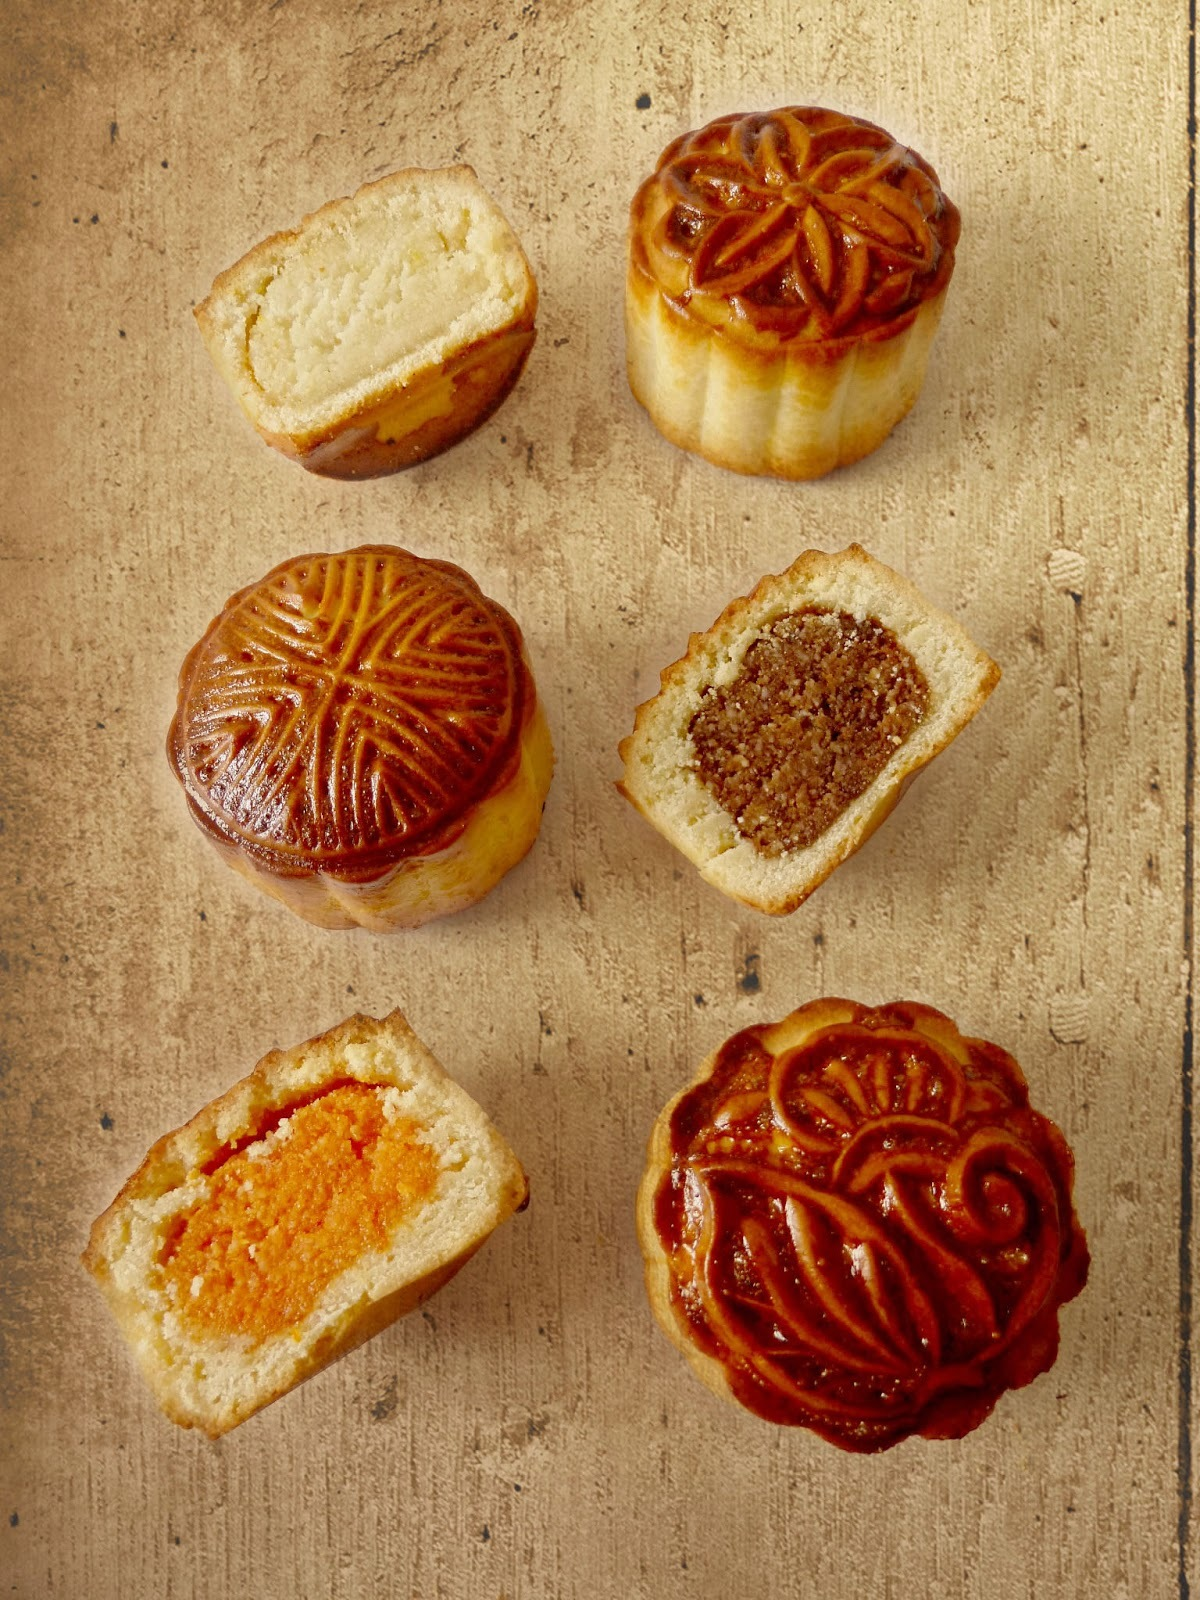 que son mooncakes